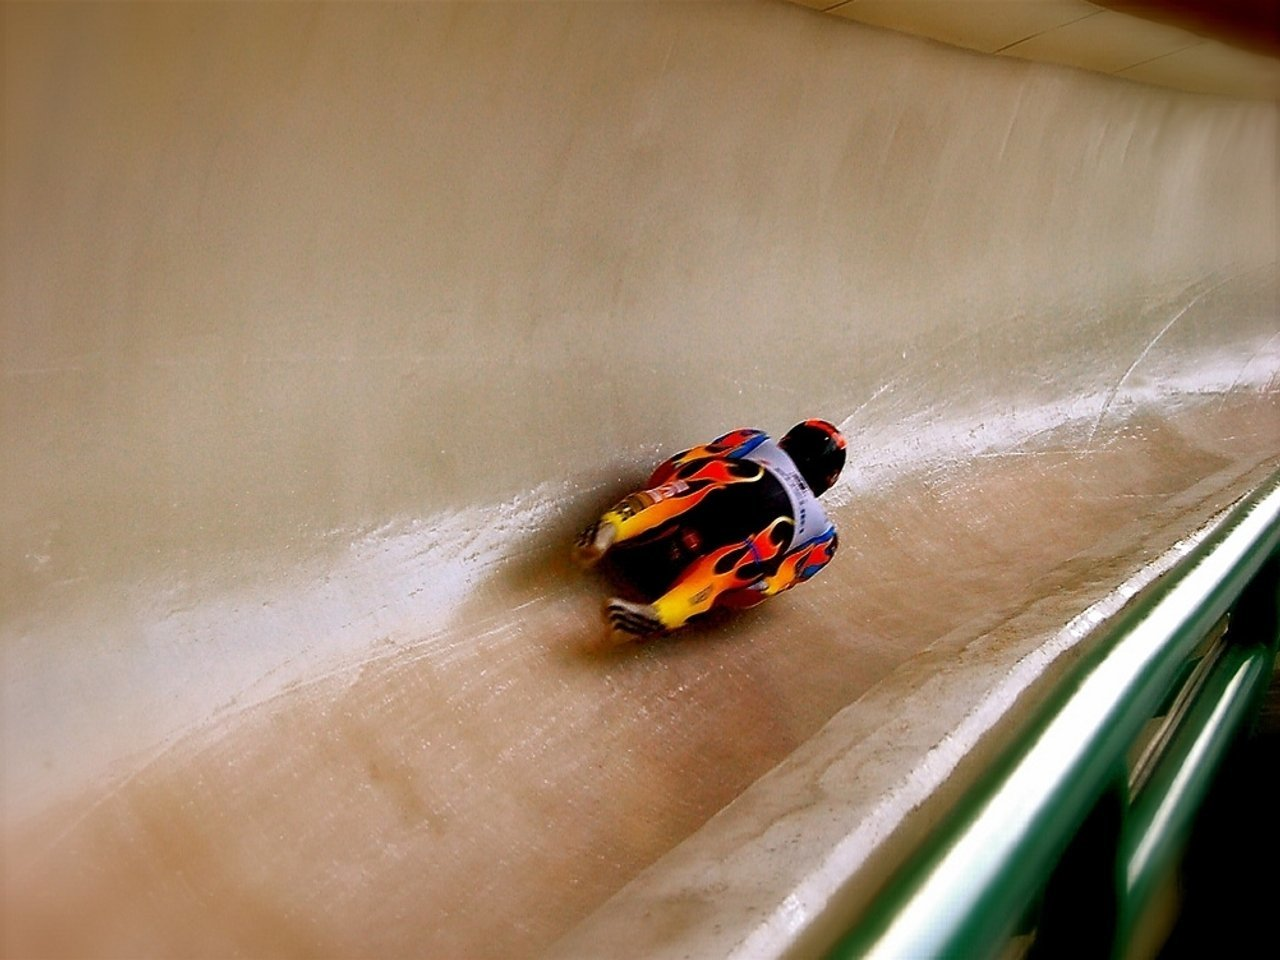 1280x960 - Luge Wallpapers 6